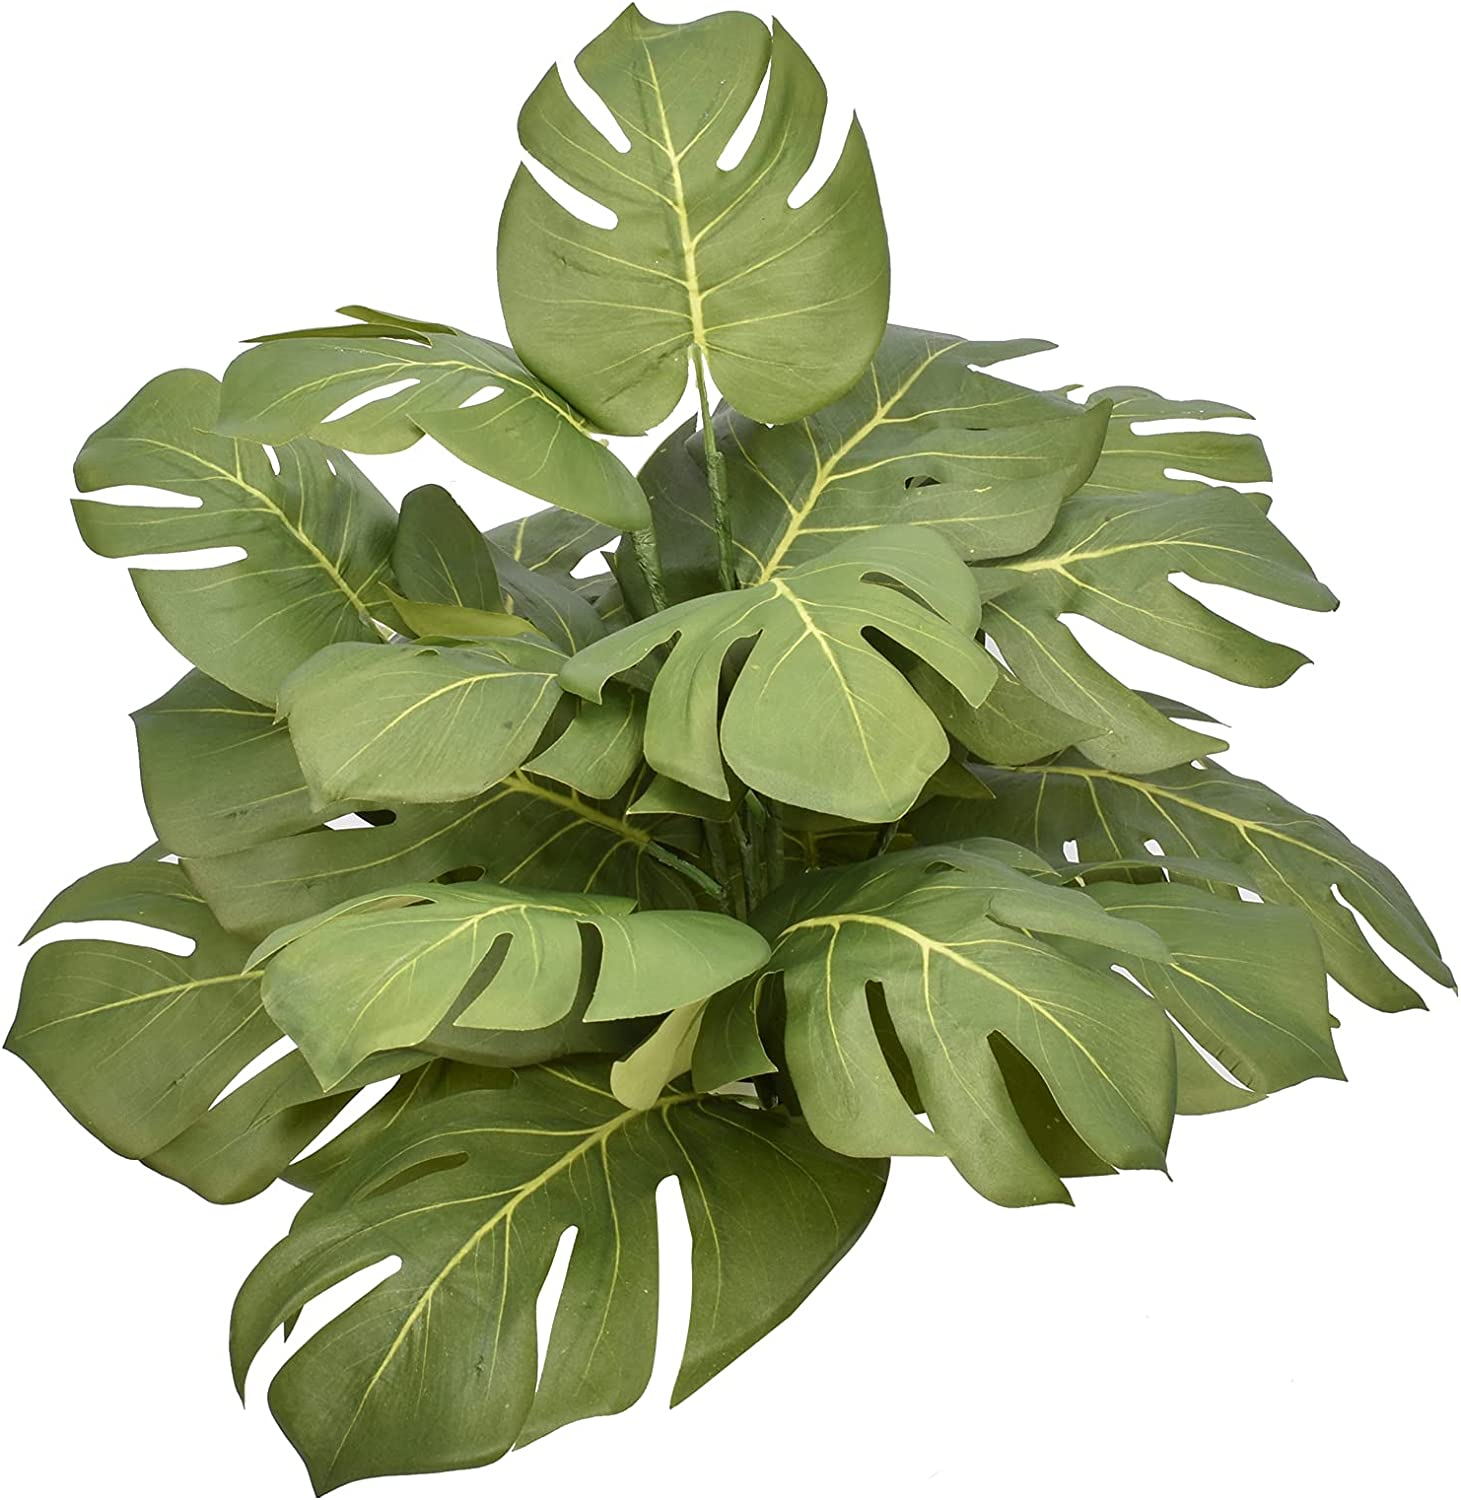 6 Piece Artificial Palm Plants Monstera Deliciosa Tropical Green Leaves Decor, Large Fake Faux Indoor Outdoor Plant Imitation Leaf for Home Kitchen Wedding Party Decor Flowers Arrangement(15